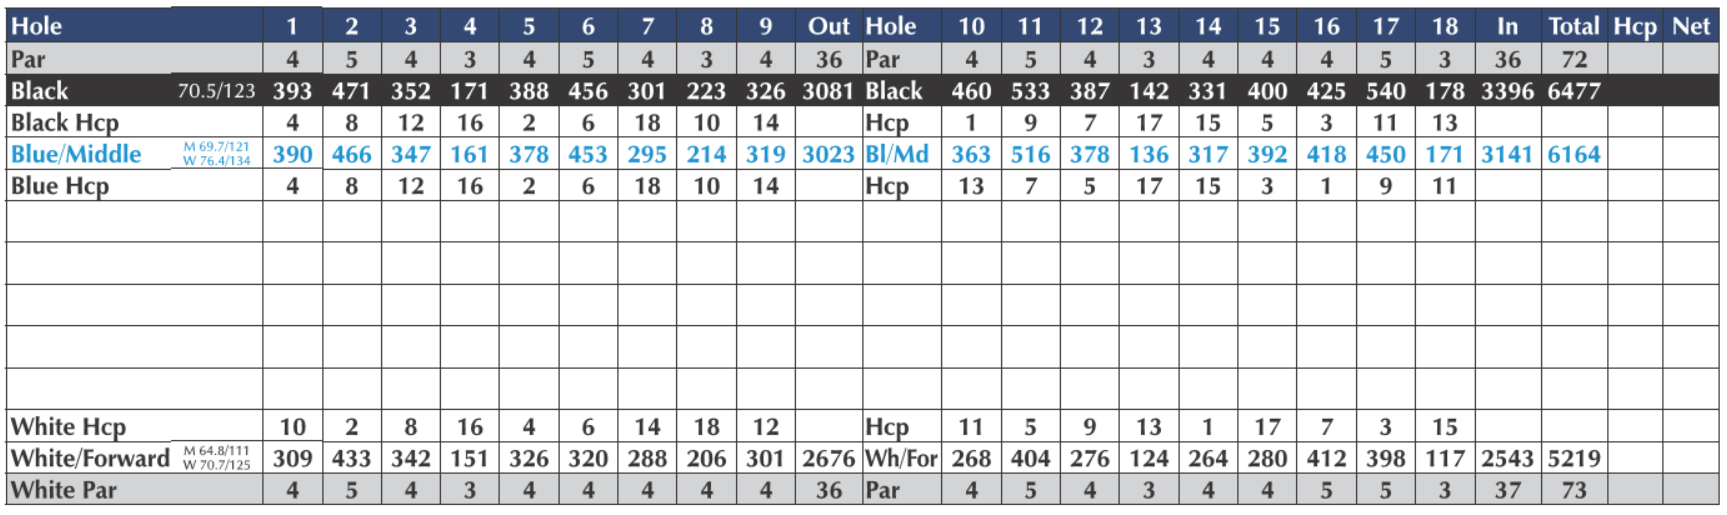 Scorecards - holes